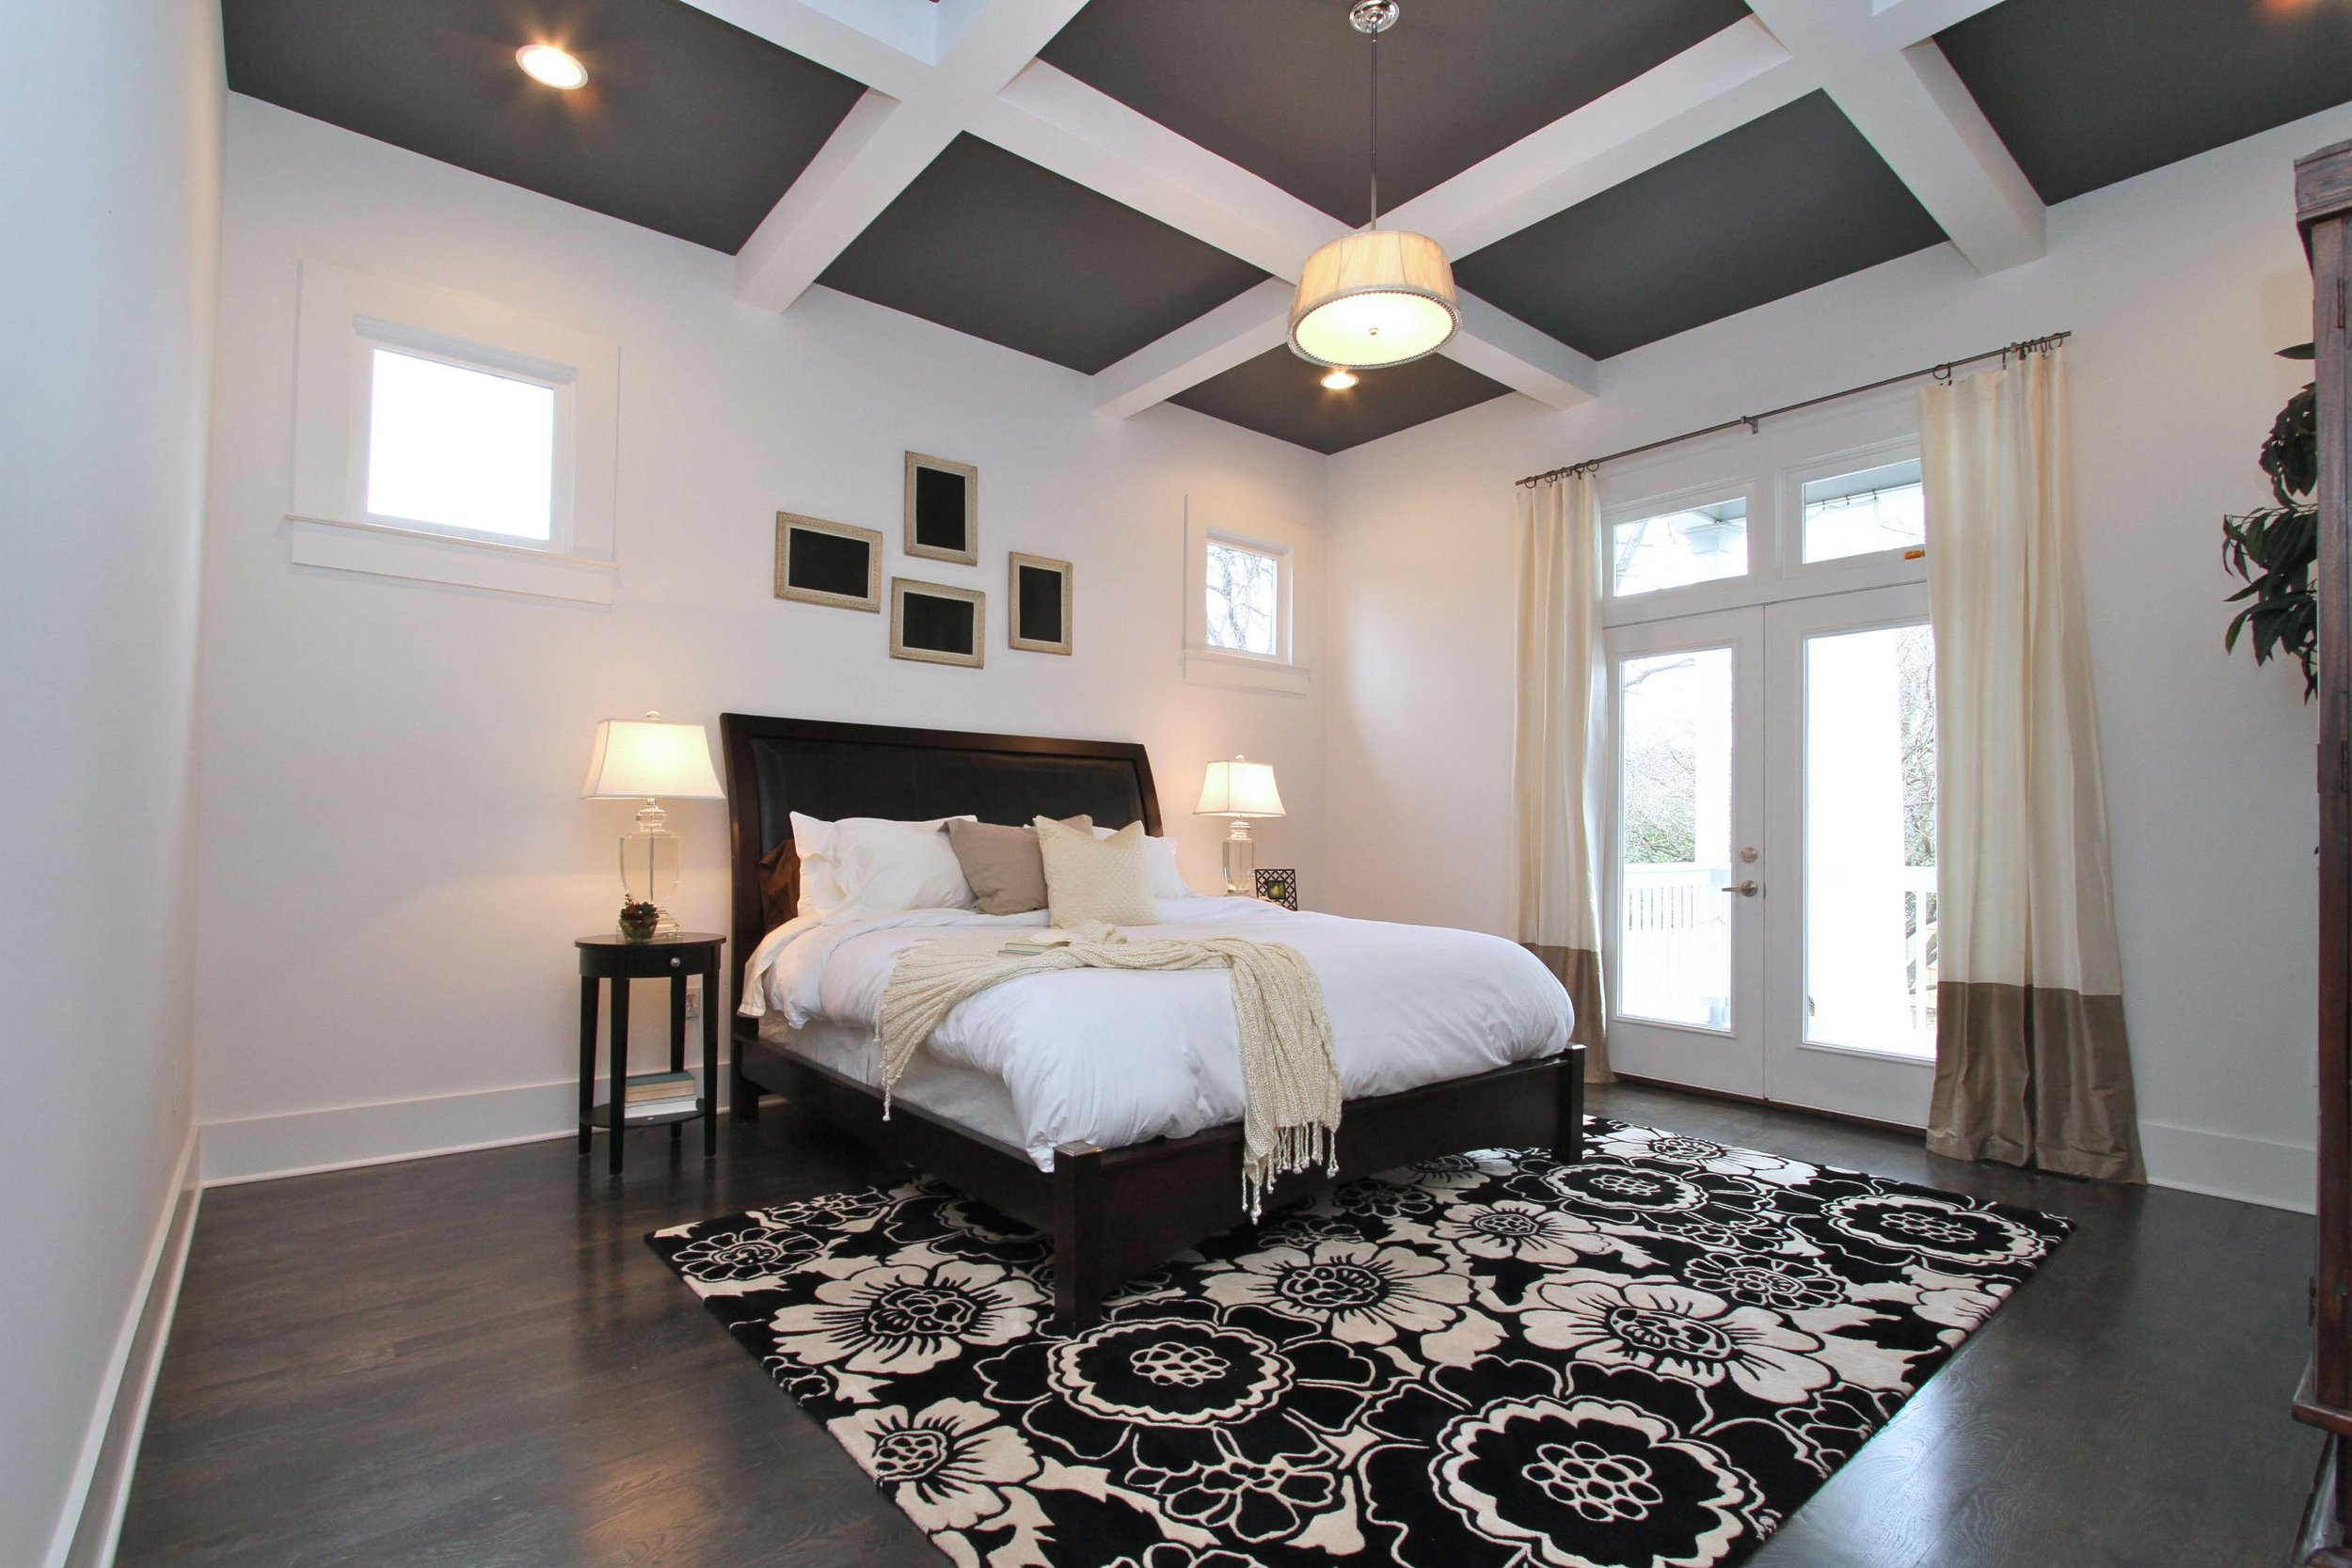 House-Plans-Online-Craftsman-Nashville-Peggy-Newman-Benton-Coffered-Master.jpg